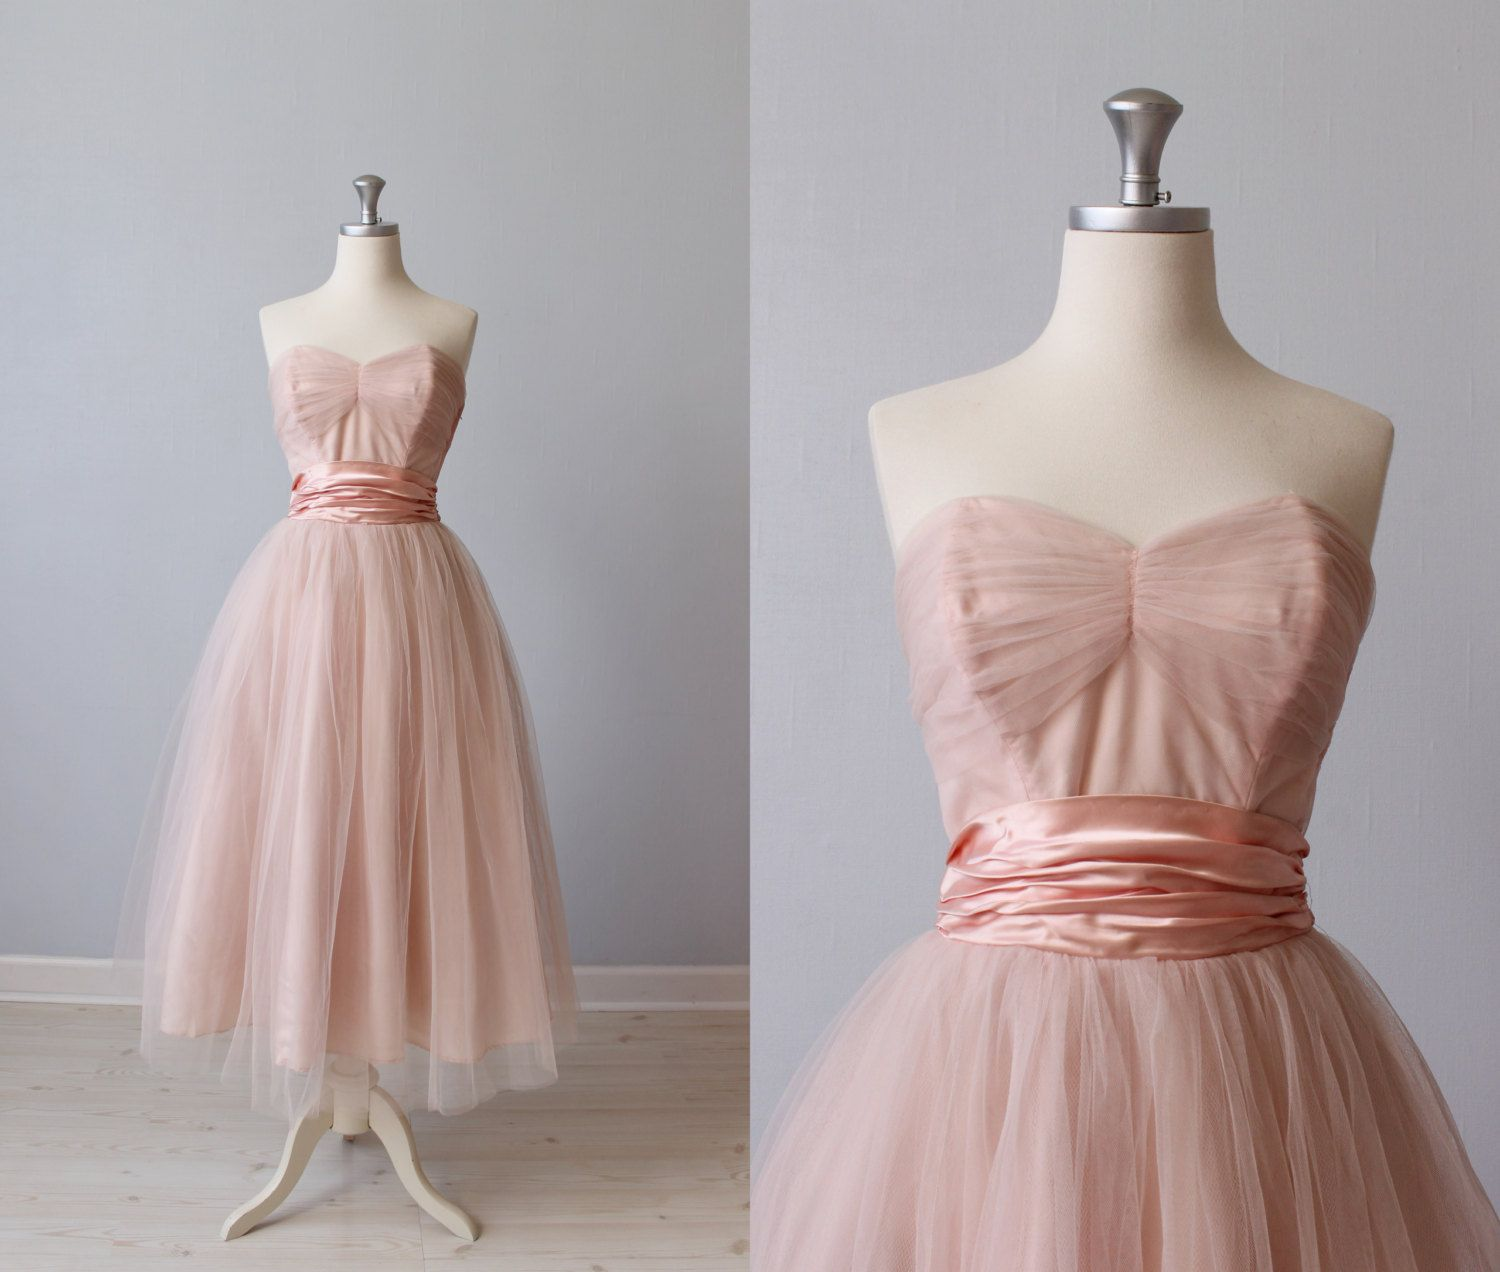 20 Incredible Wedding Dresses for under $1000 | Pink tulle, Tulle ...